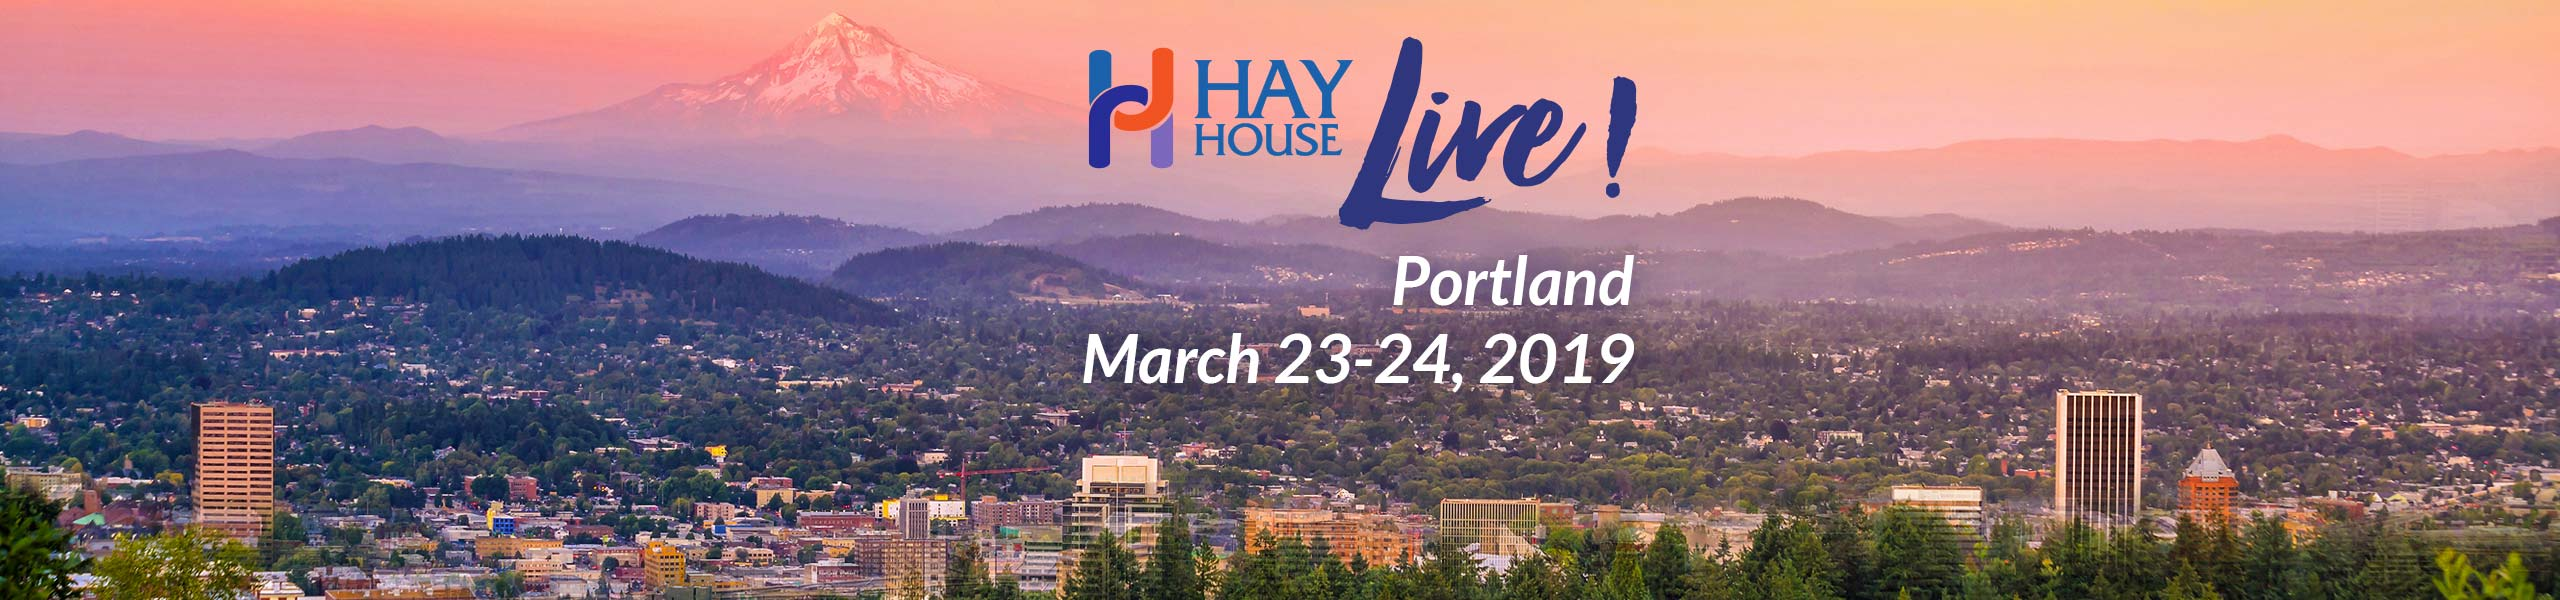 Hay House Live! Portland 2019 - Dr. Joe Dispenza